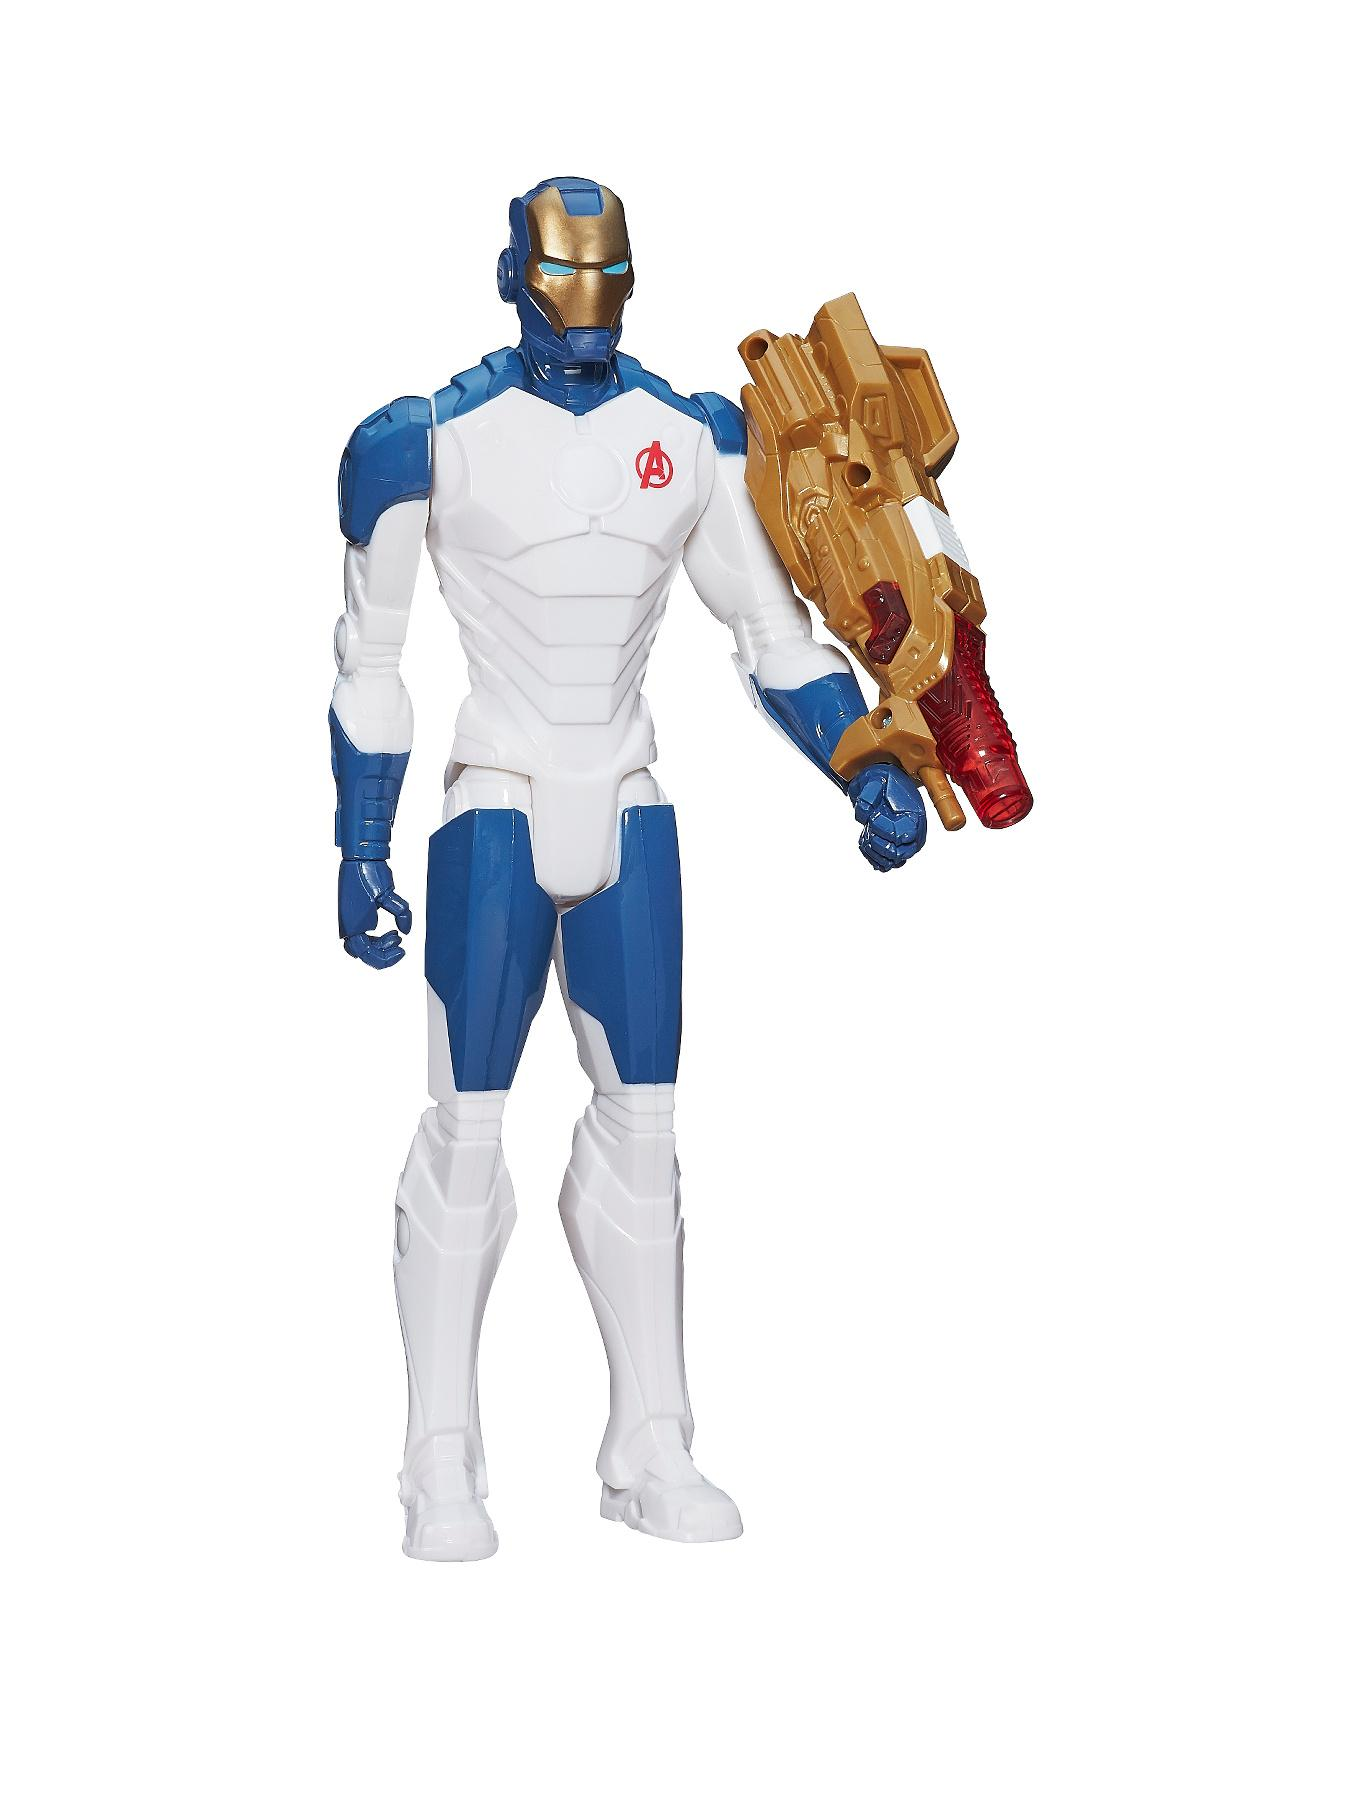 The Avengers Titan Hero Light up Beam Blaster Iron Man